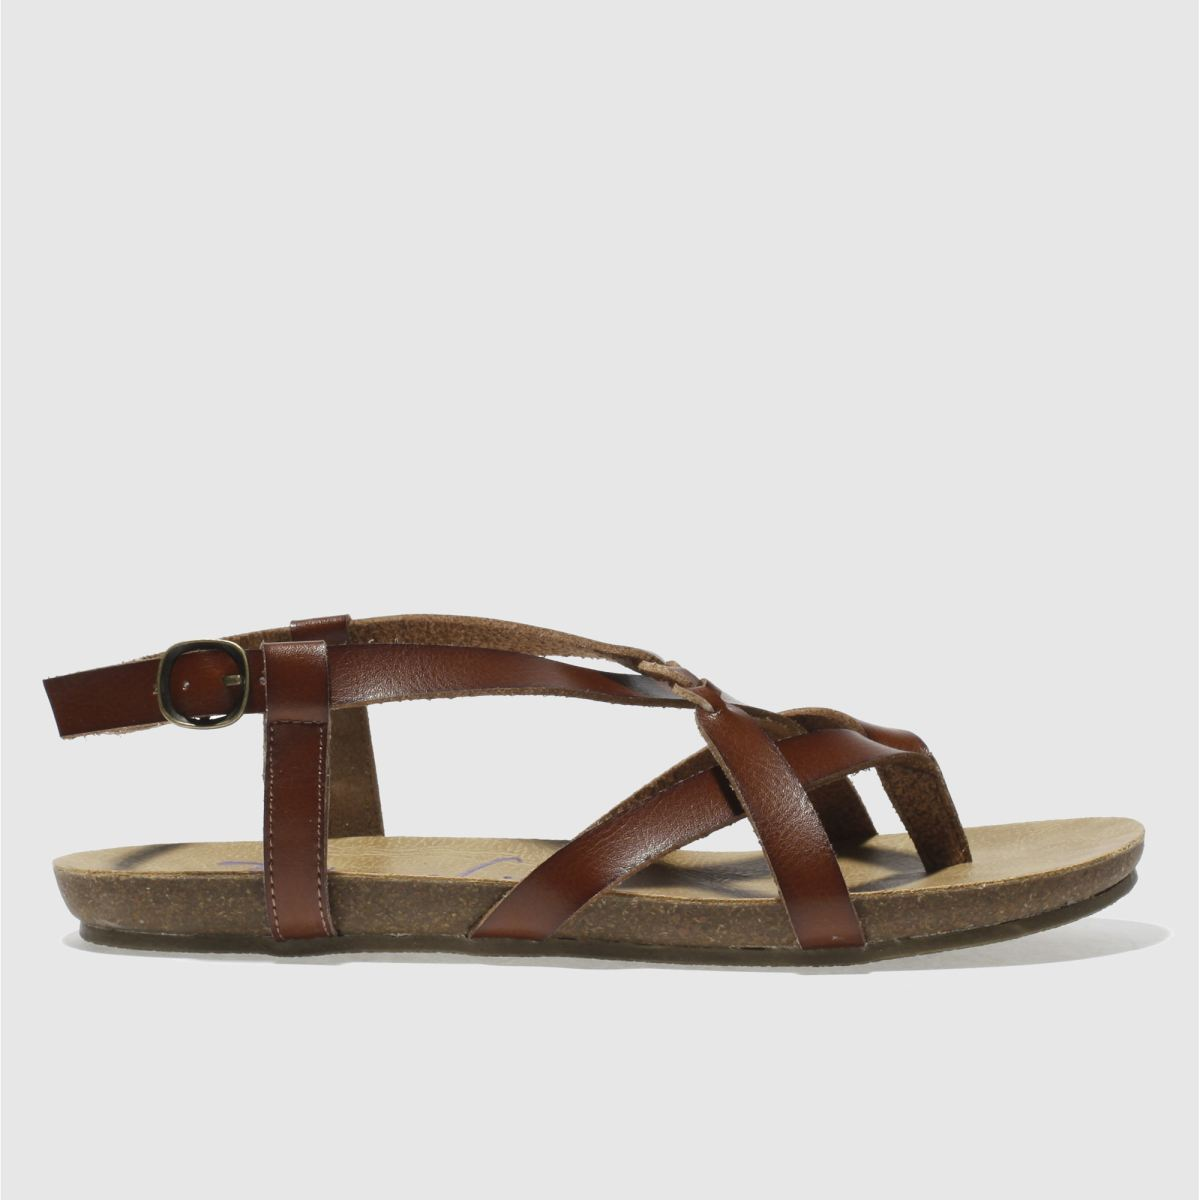 06fc8ee66a83 Blowfish Tan Granola B Vegan Sandals